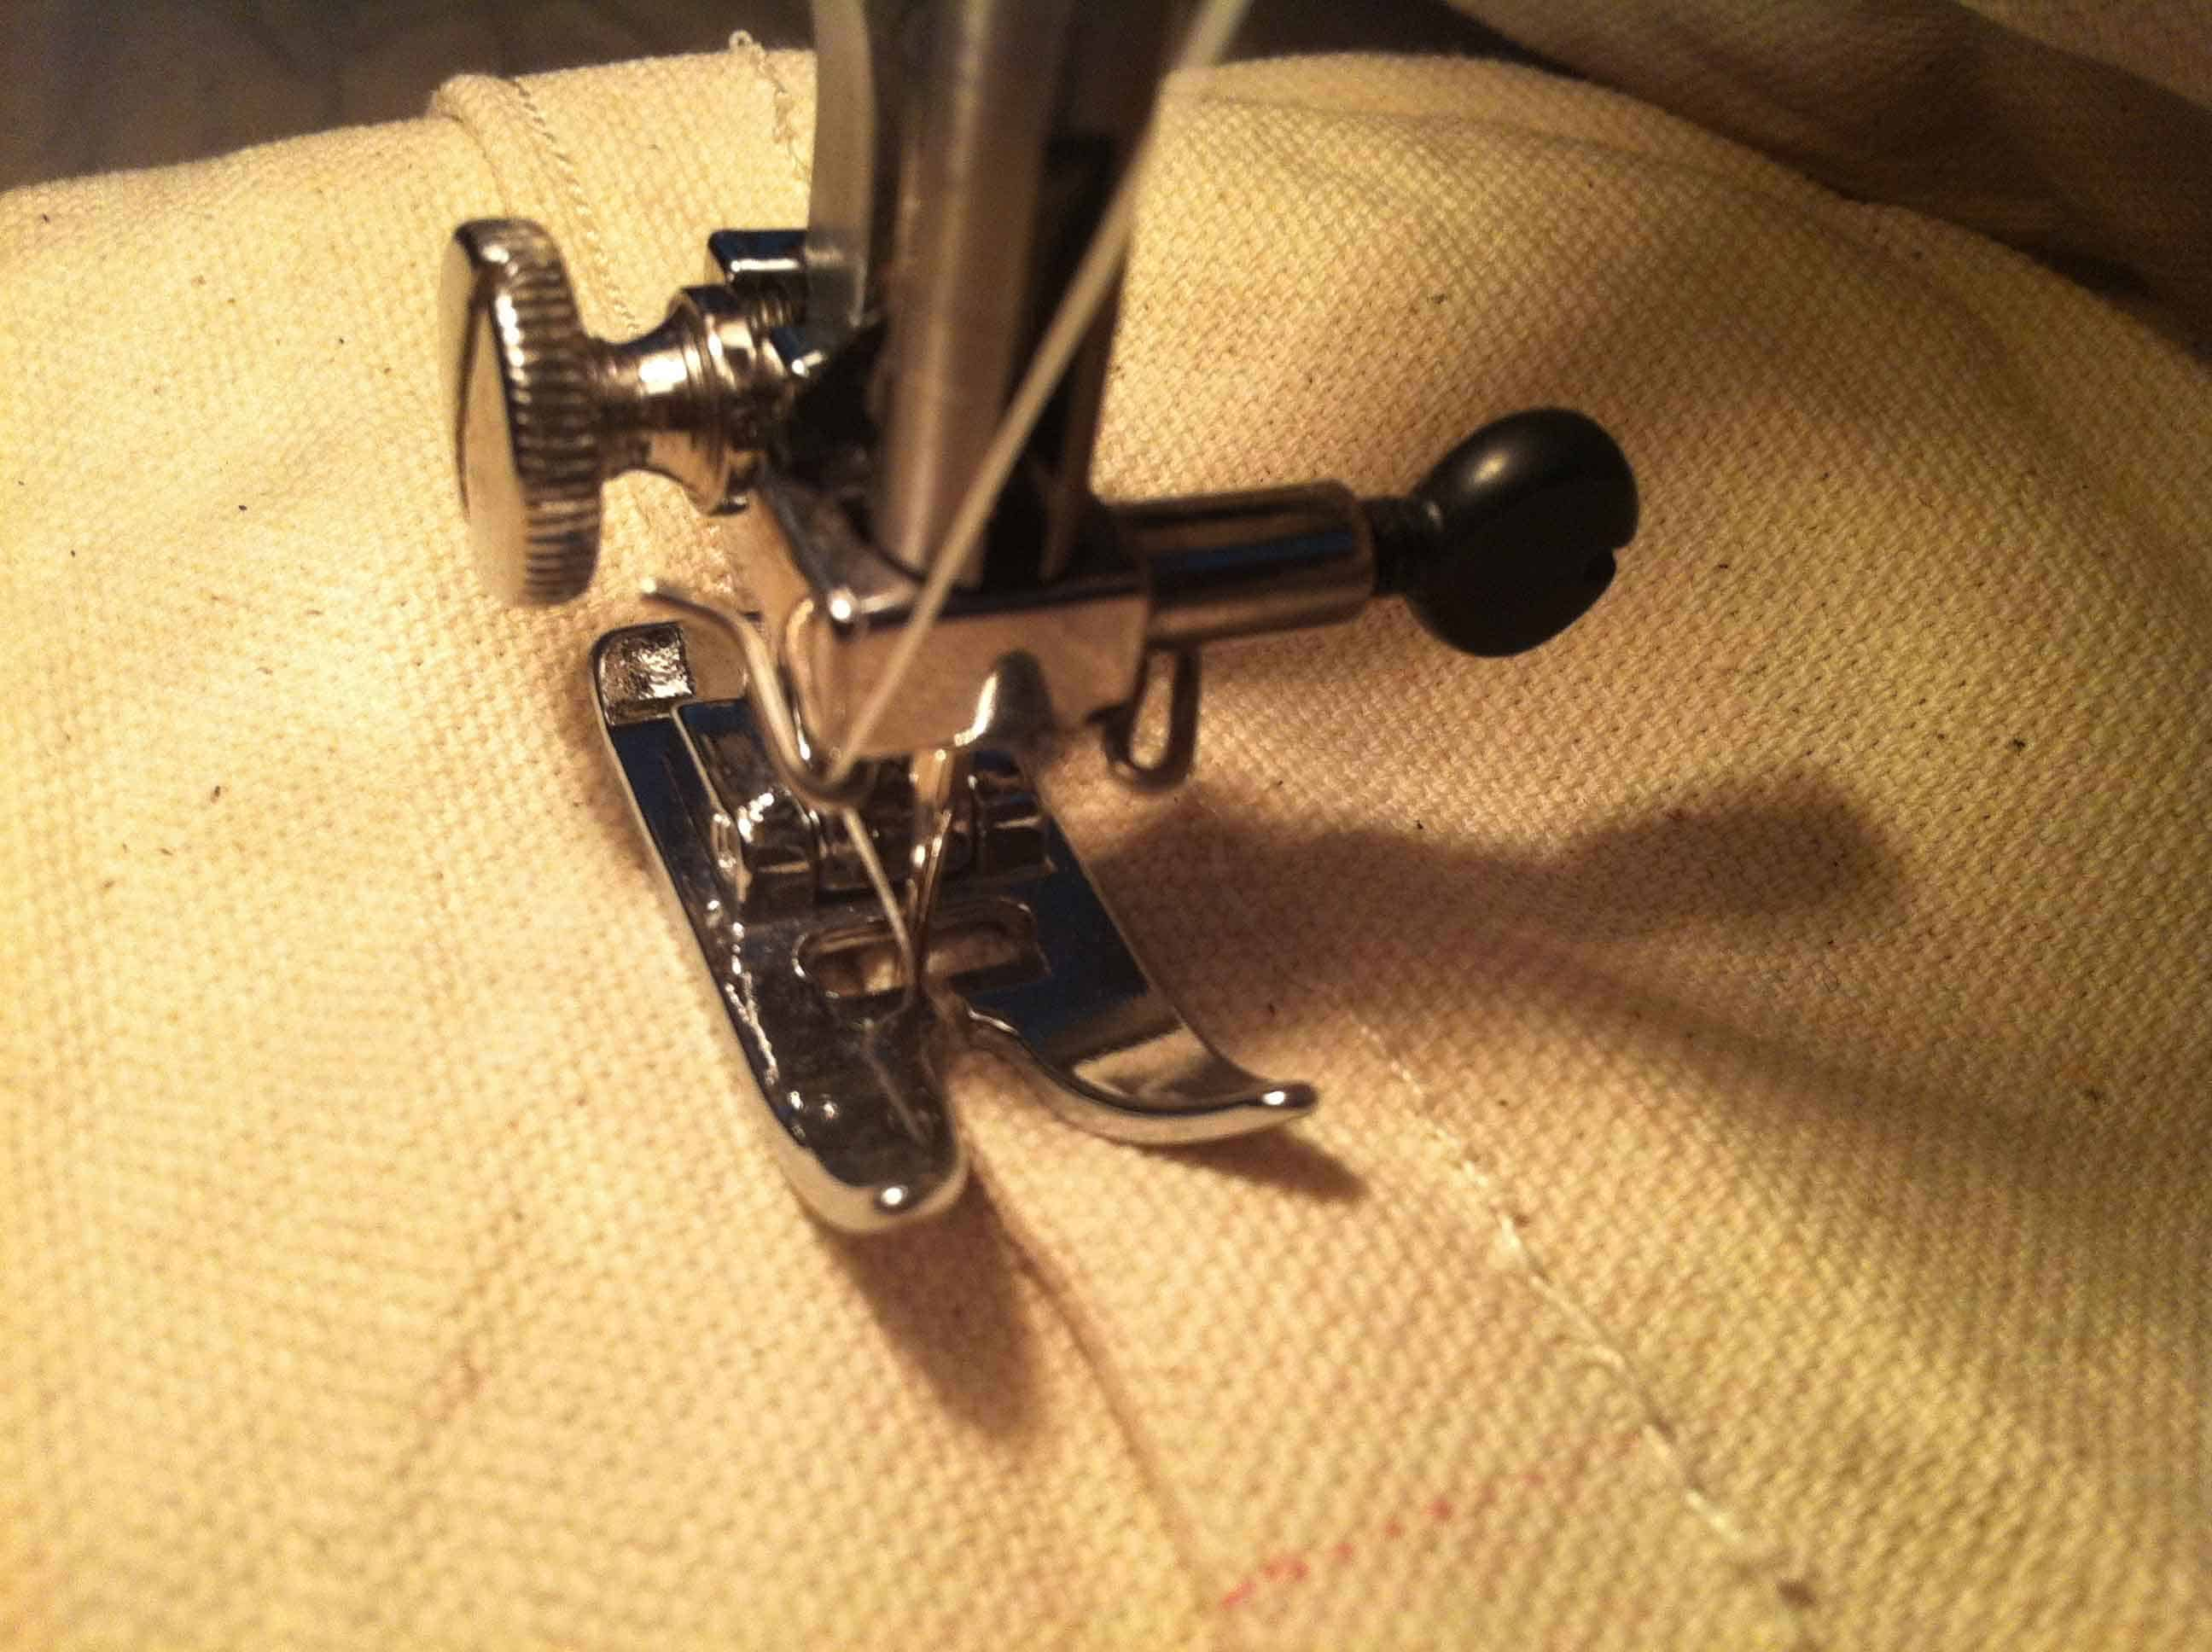 Sewing – hobbies for men